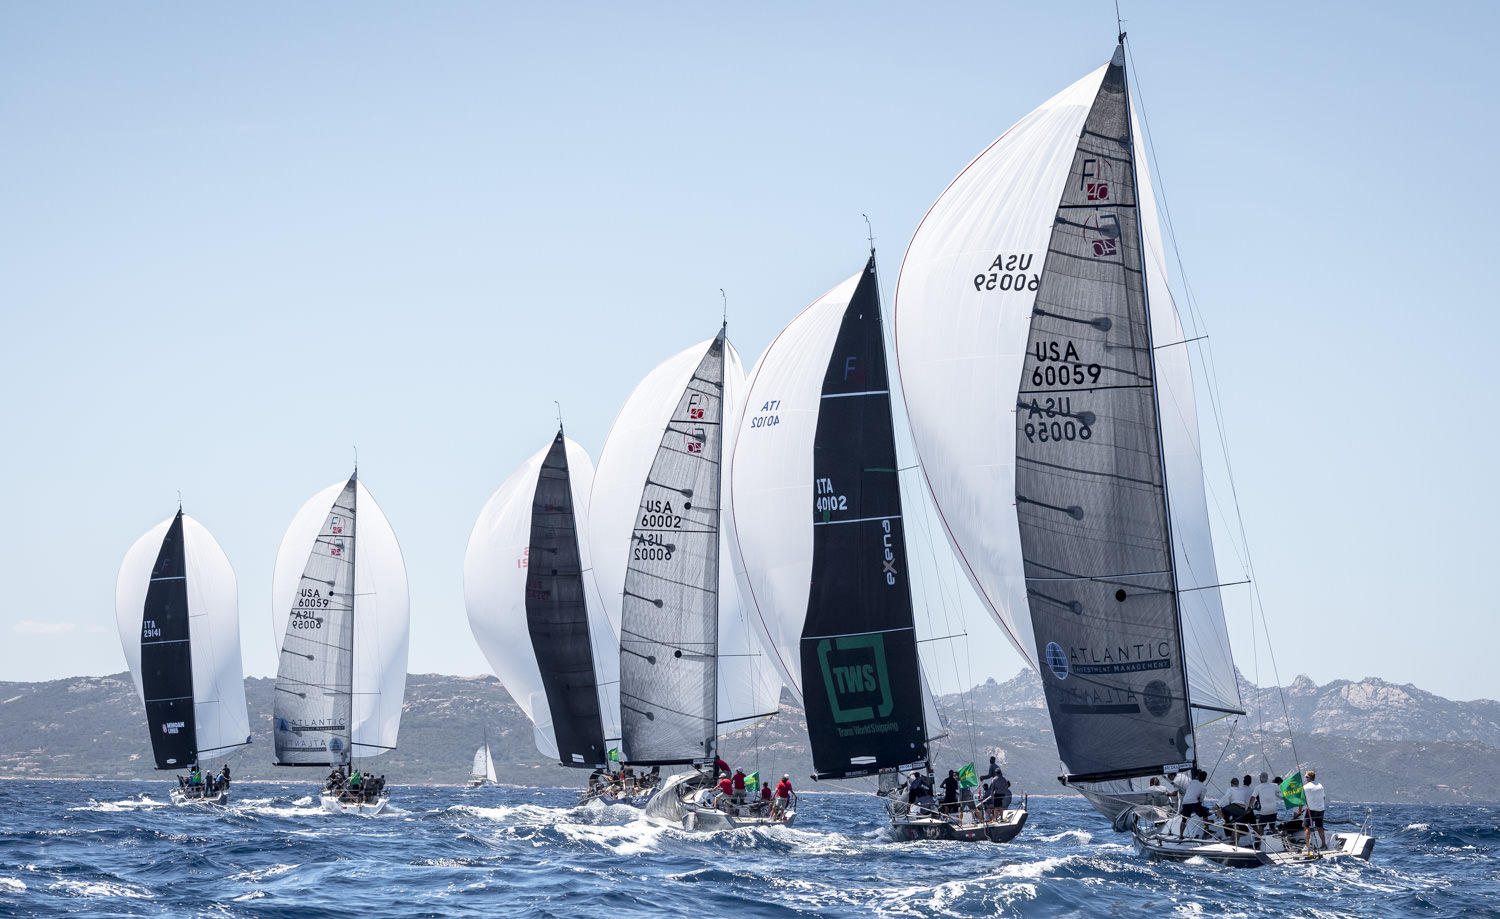 Rolex Farr 40 World Championship - Images Final Day online - NEWS - Yacht Club Costa Smeralda